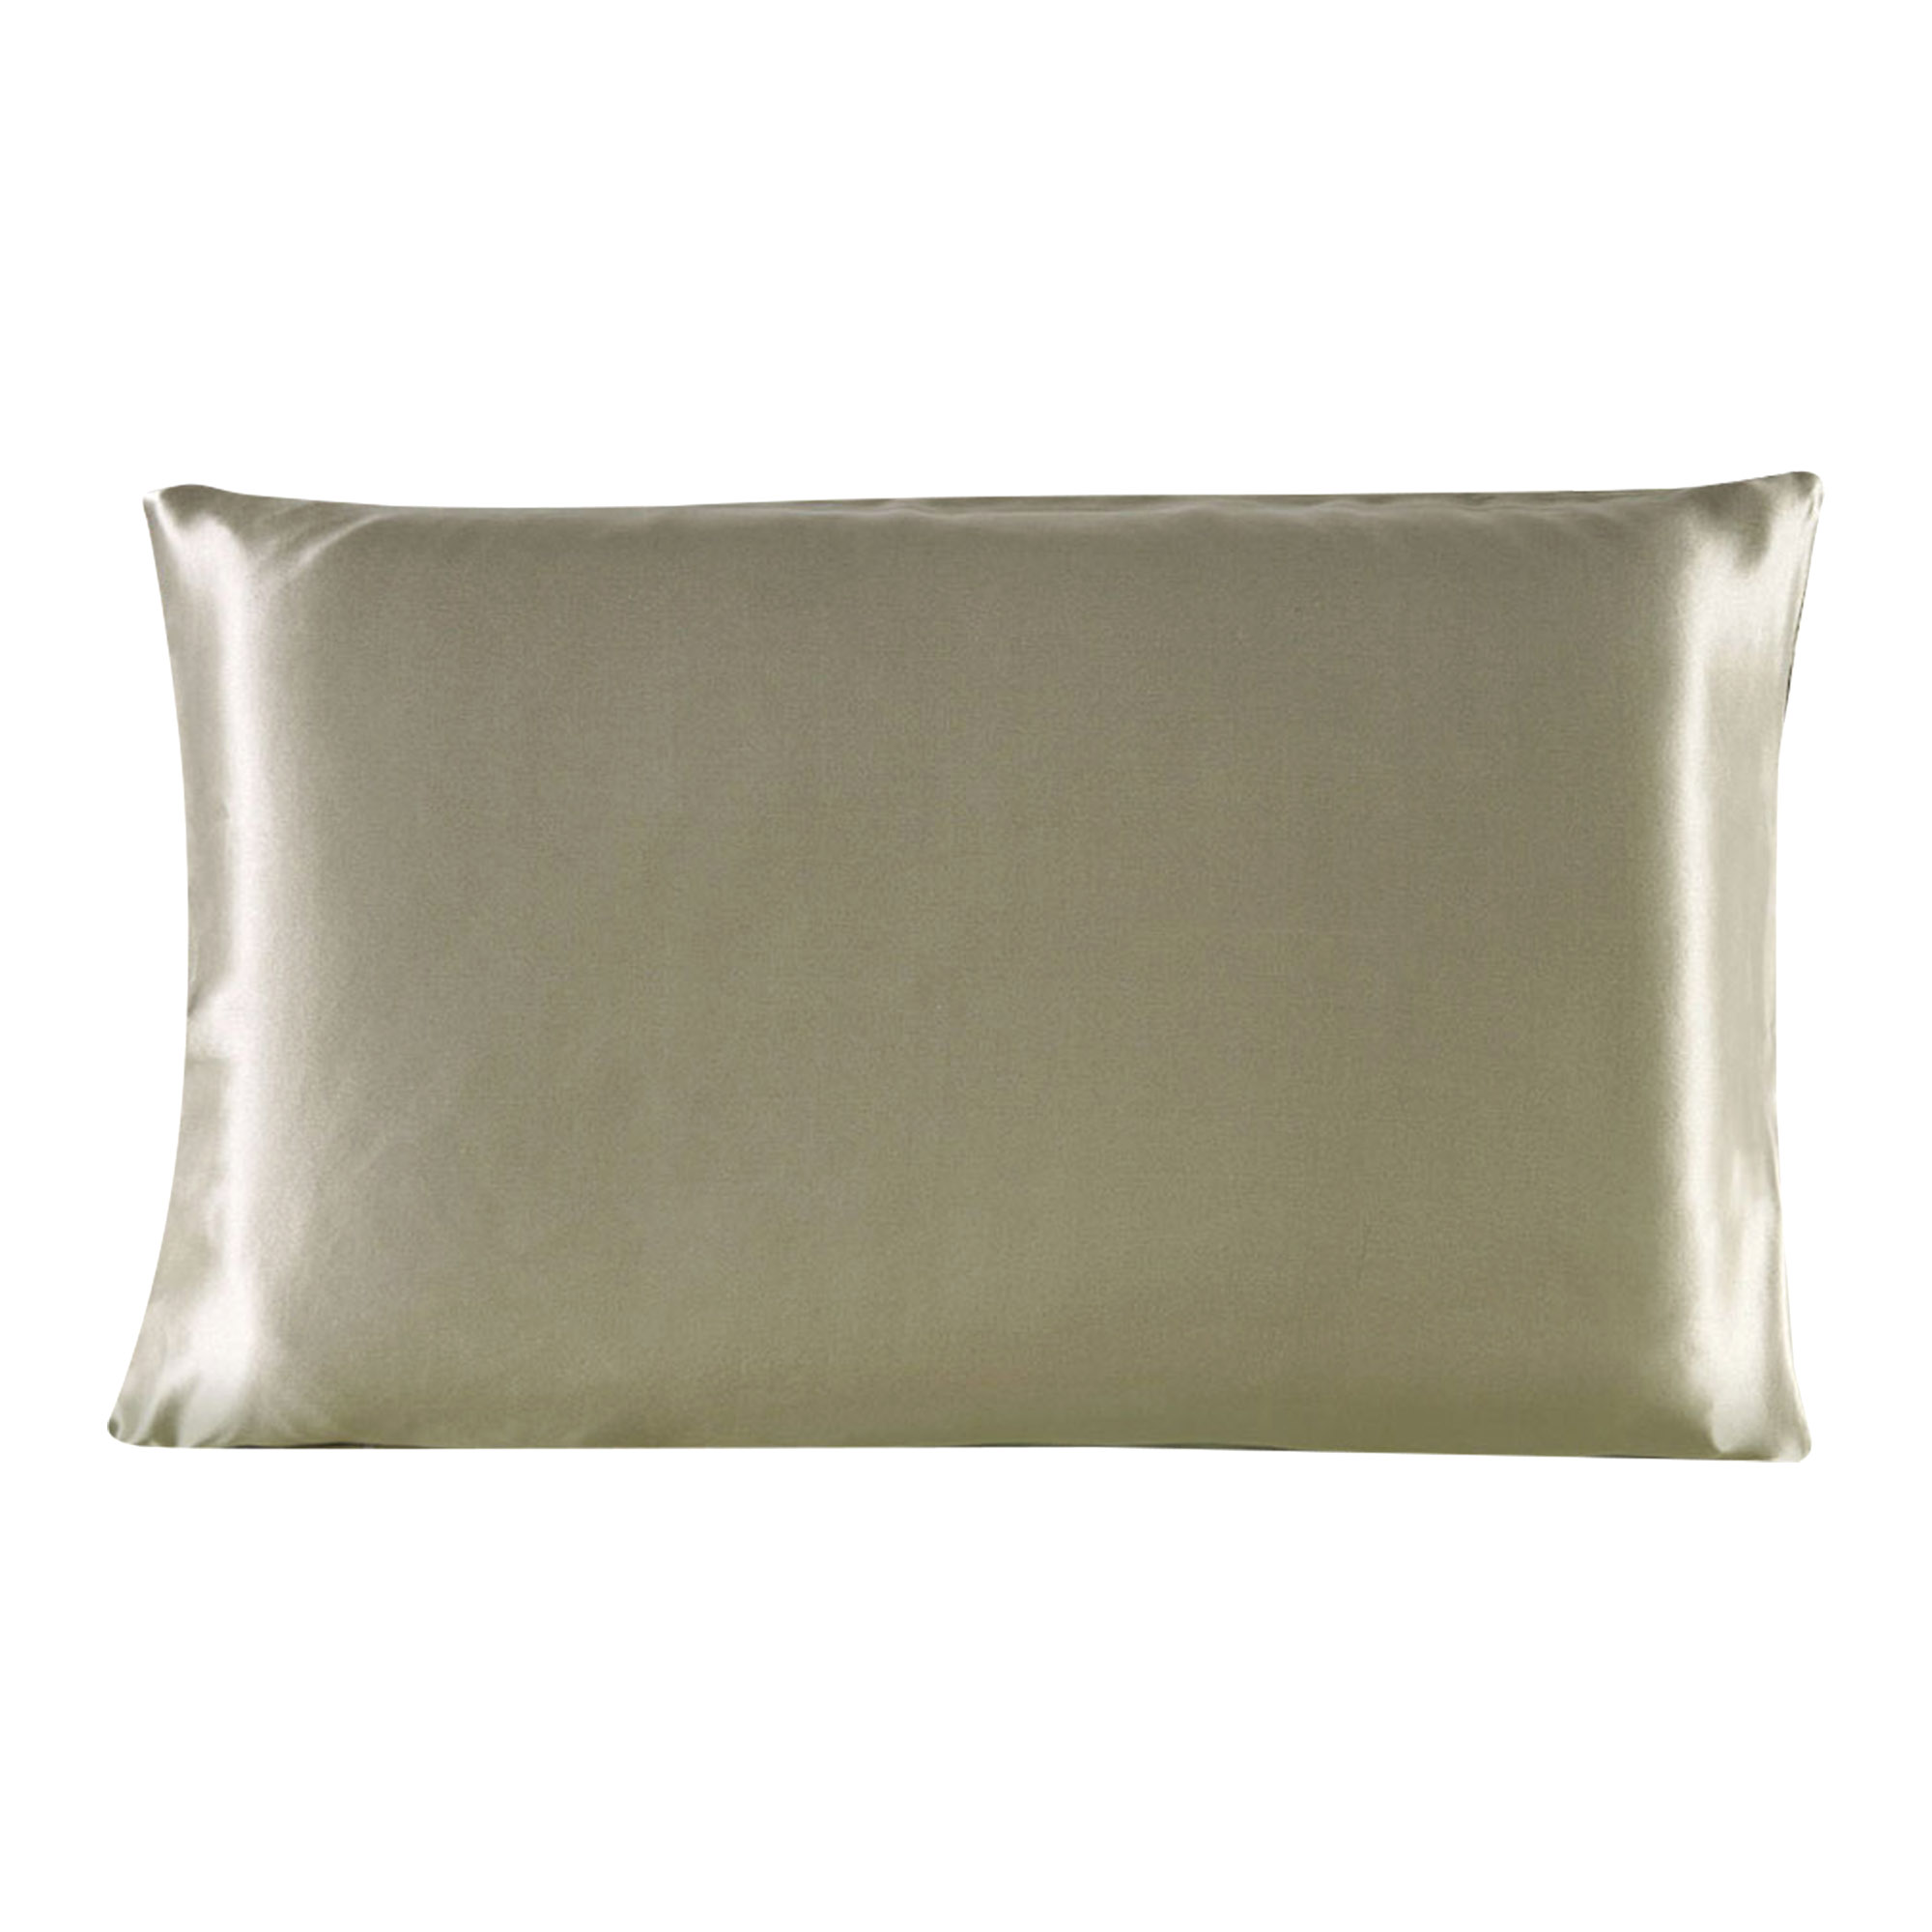 100% Mulberry Silk Fabric Pillow Case Pillowcase Light Coffee Standard Size